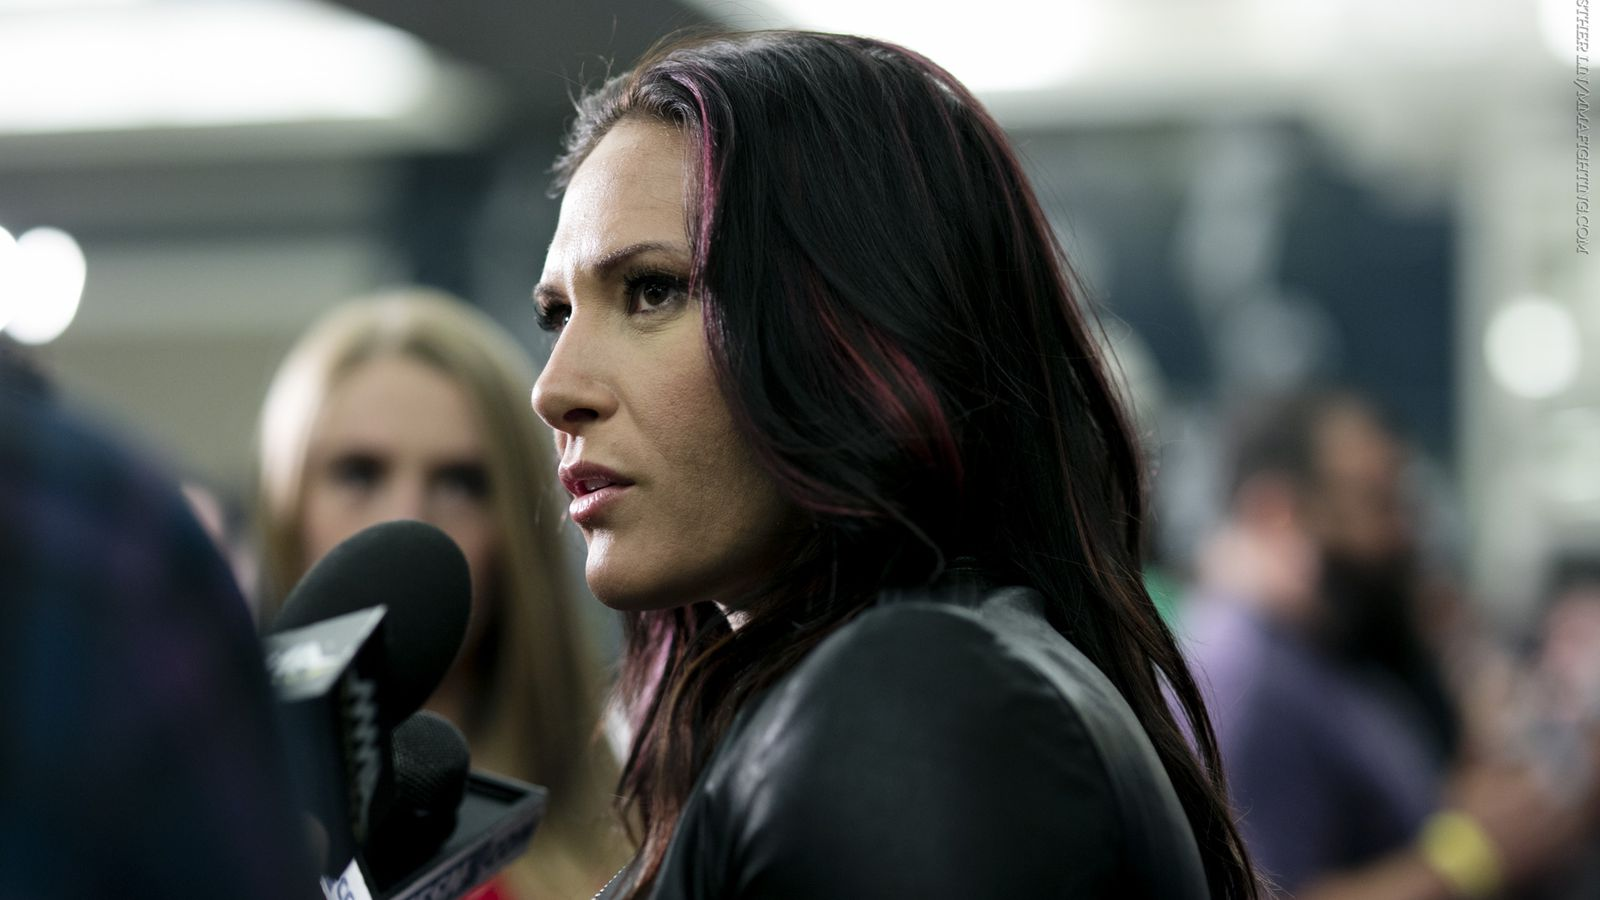 Cat Zingano Explains Why She Posted Extreme Weight Loss